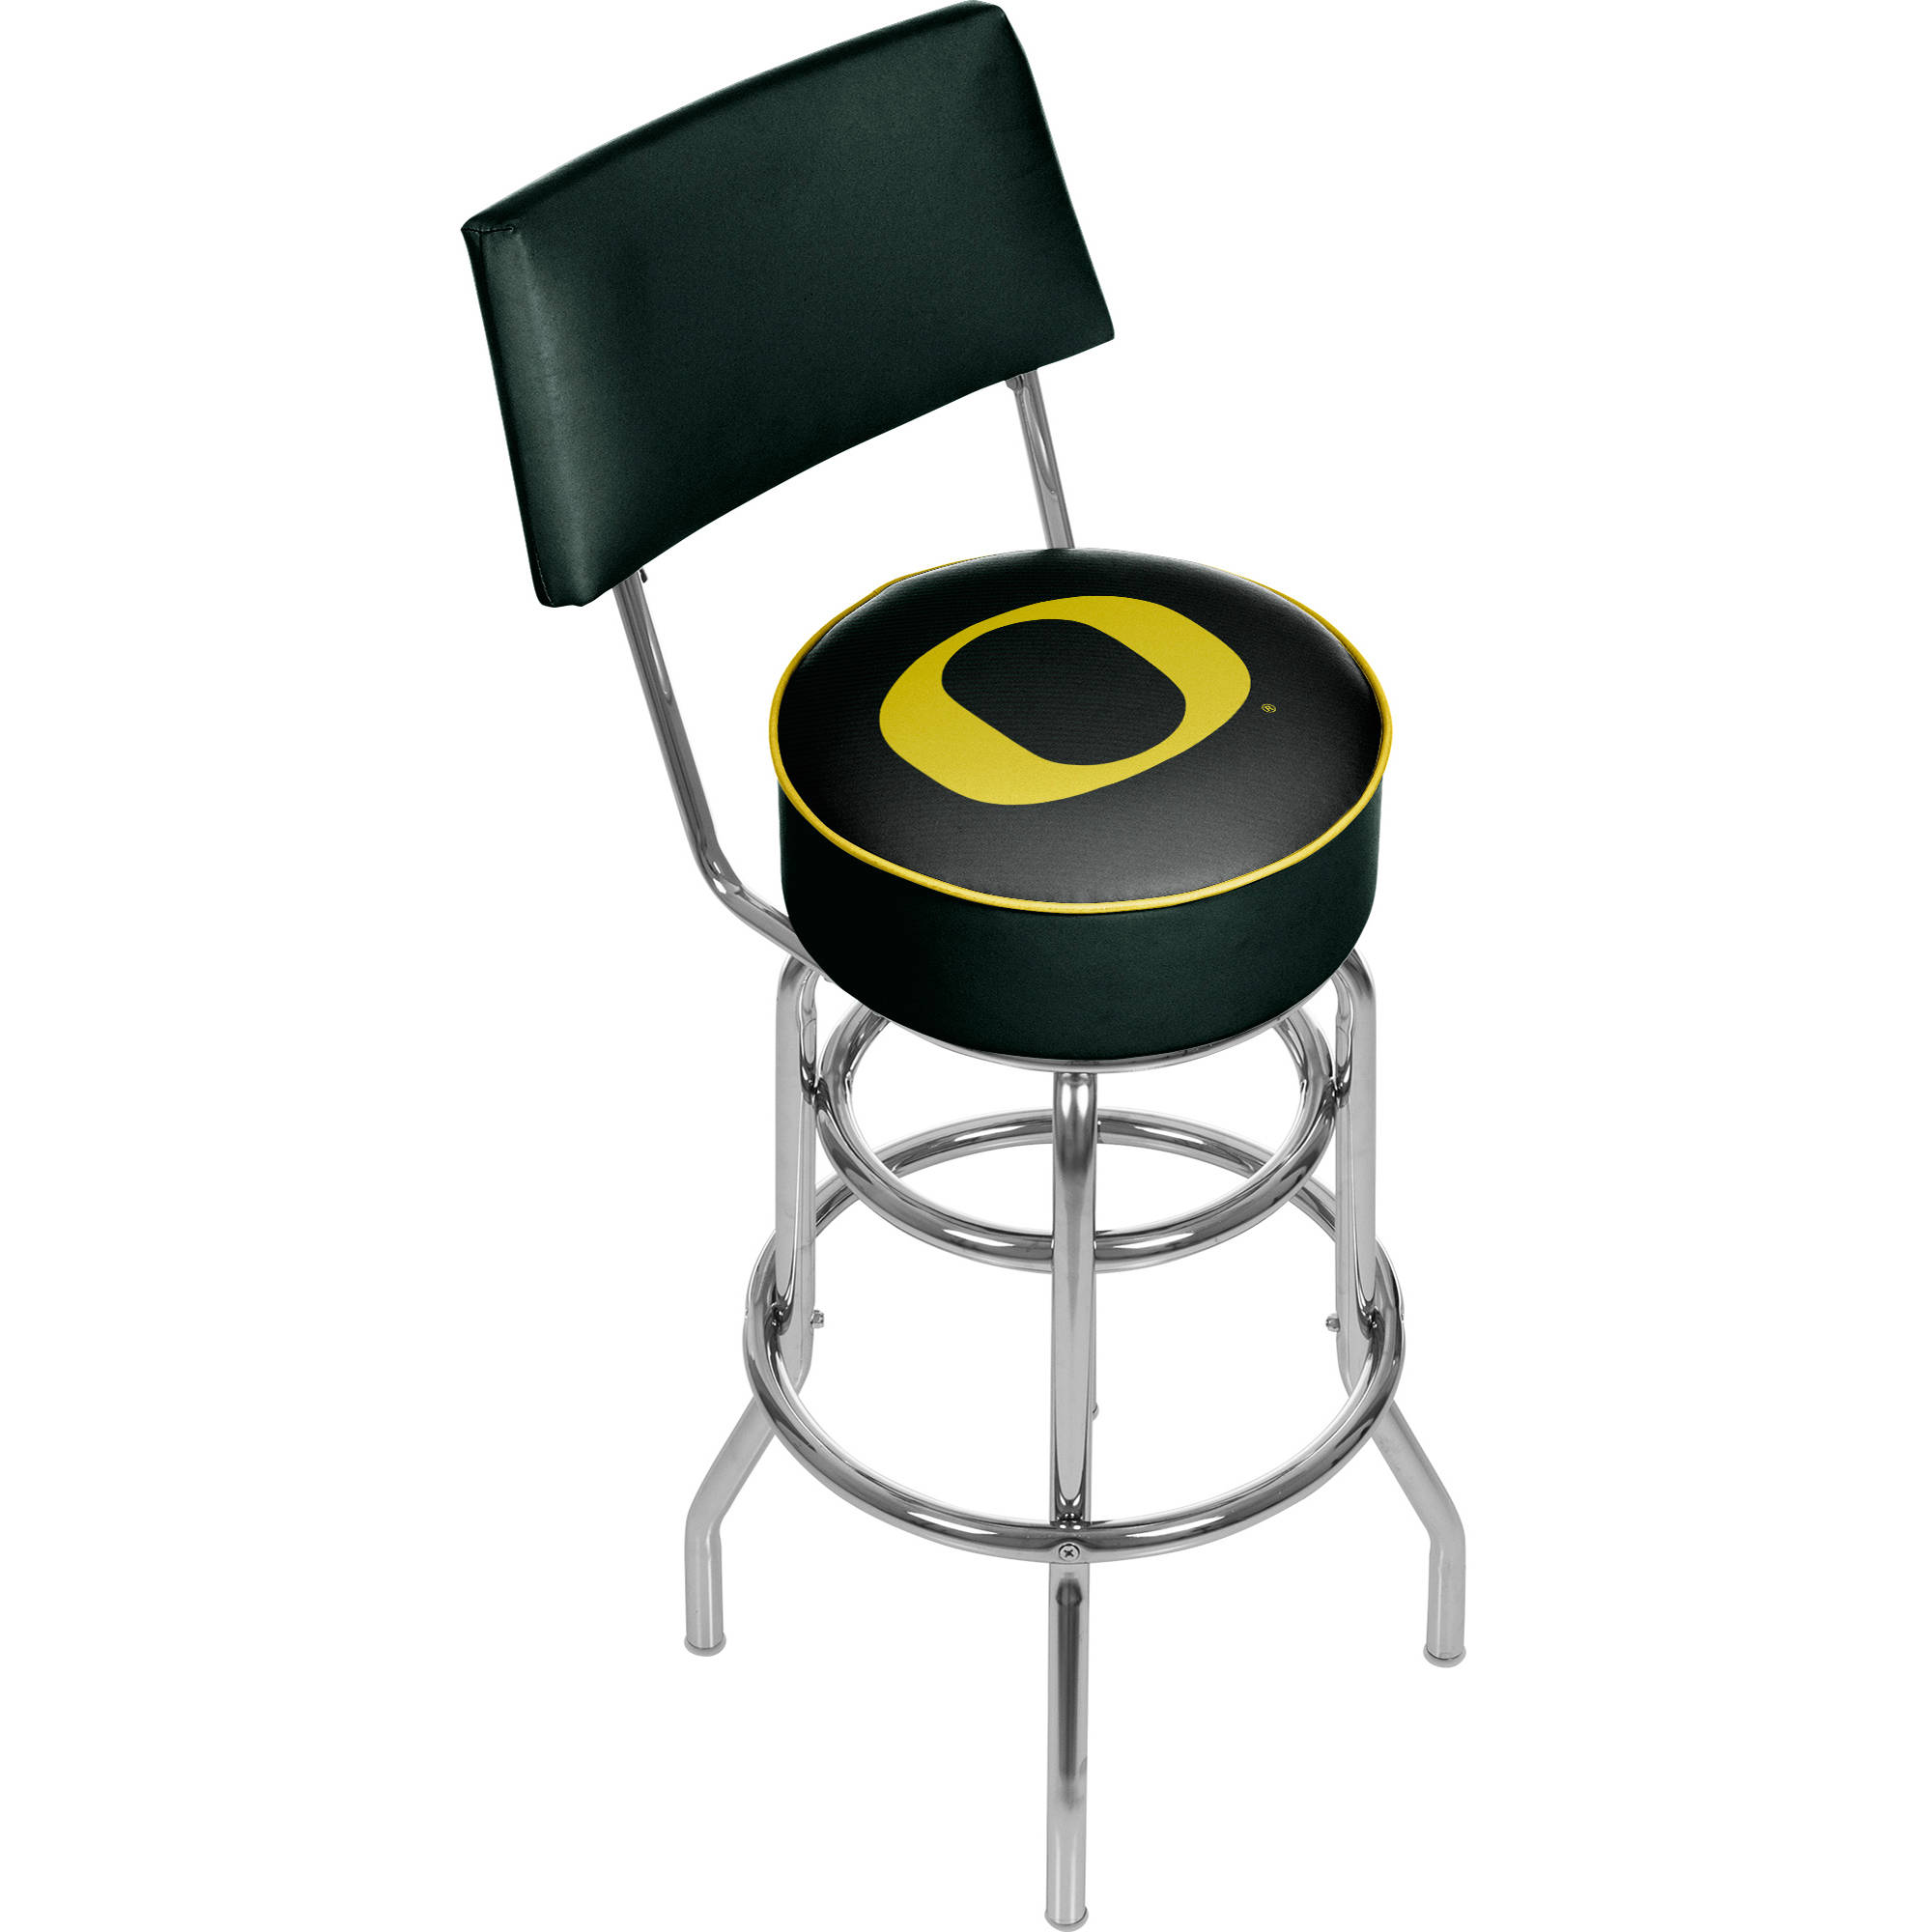 University of Oregon Swivel Bar Stool with Back, Carbon Fiber